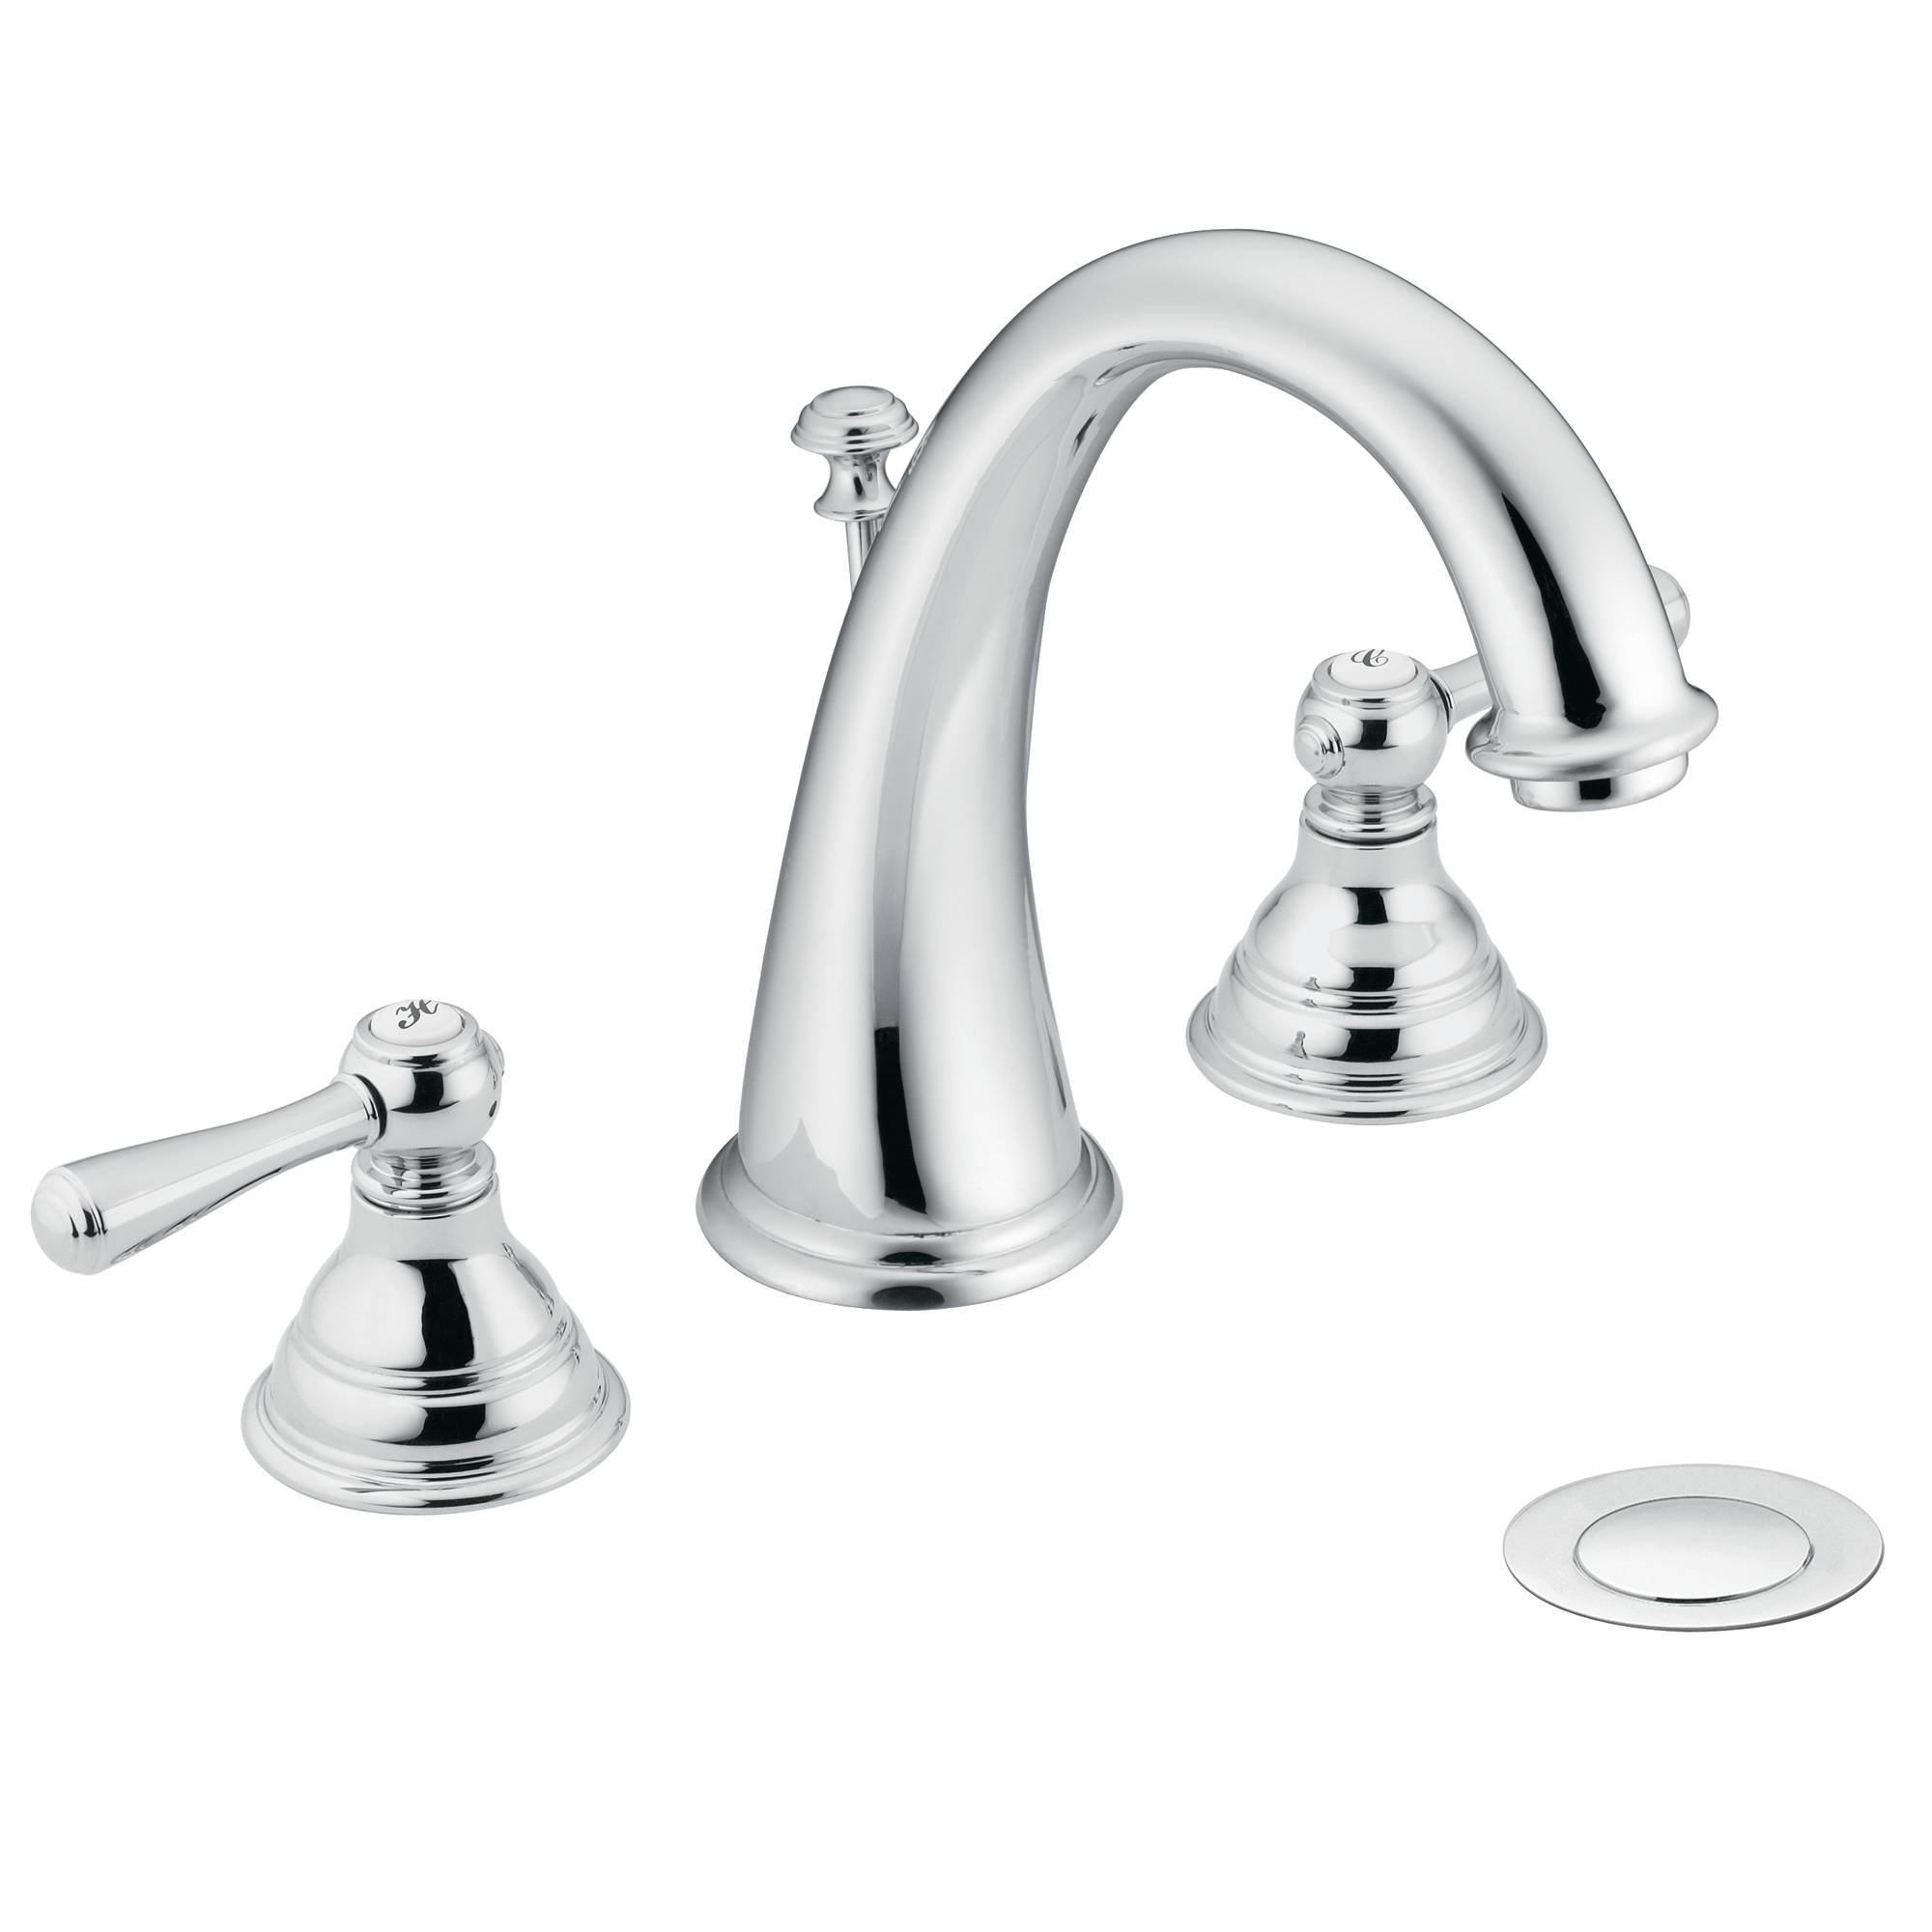 Moen T6125 Kingsley Bathroom Faucet without Valve, Chrome